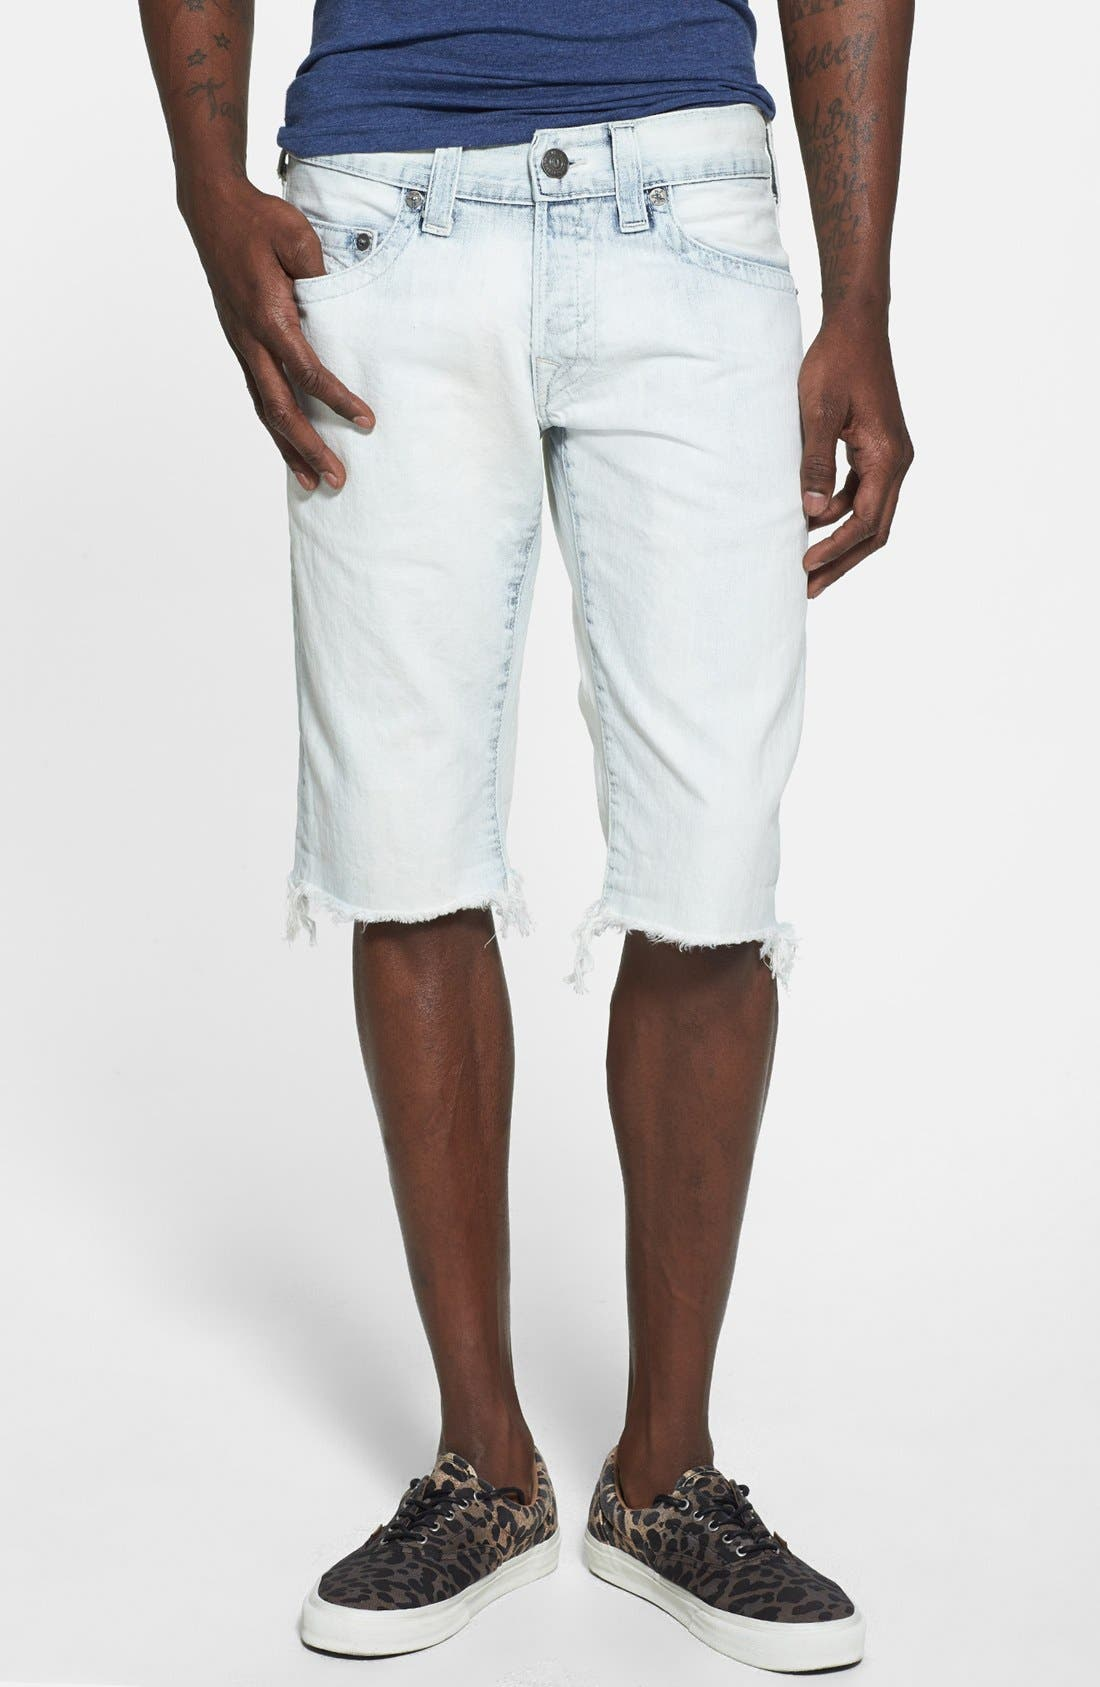 Alternate Image 1 Selected - True Religion Brand Jeans 'Geno' Cutoff Denim Shorts